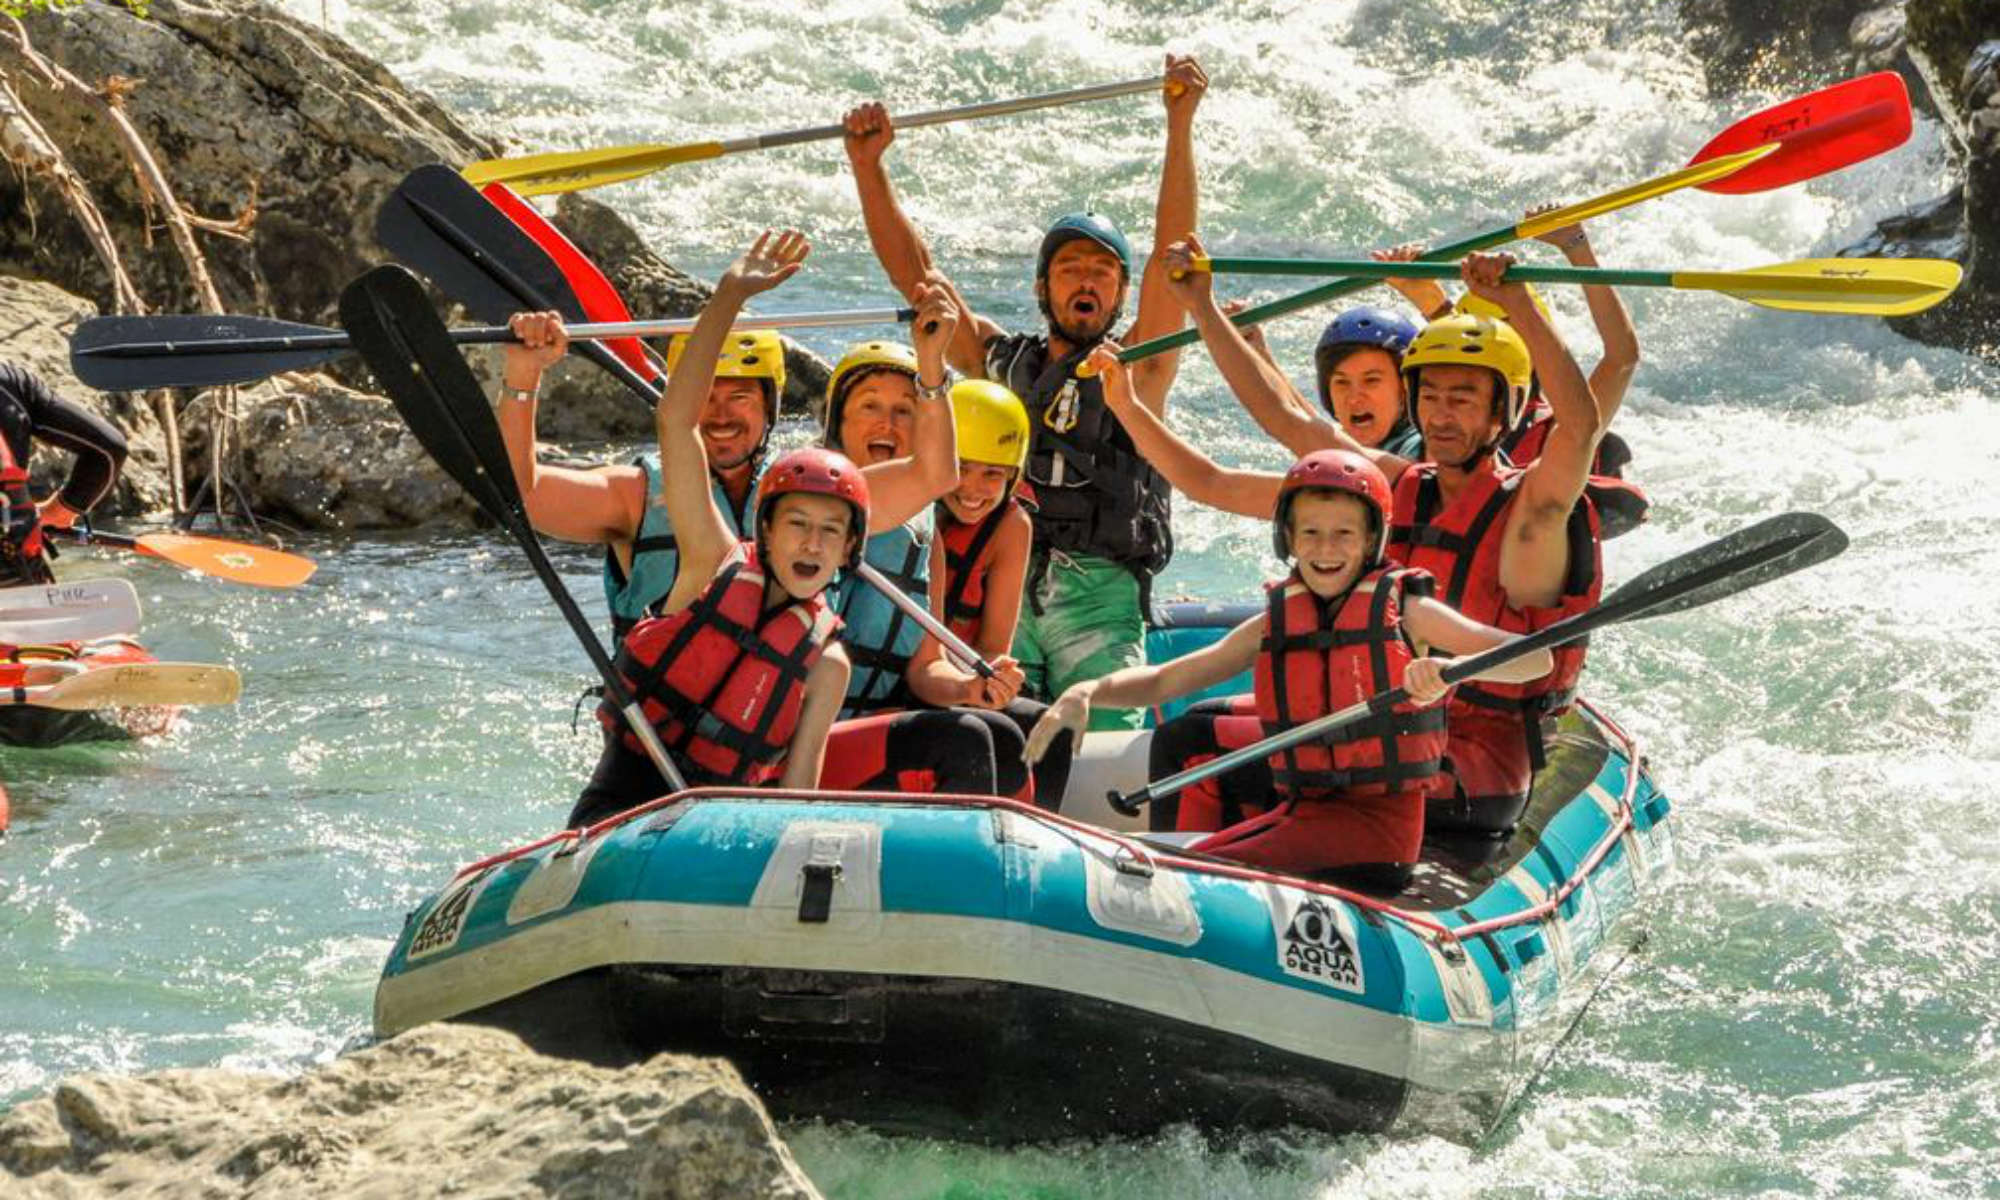 A group of people is seemingly enjoying their rafting tour on the Verdon River.